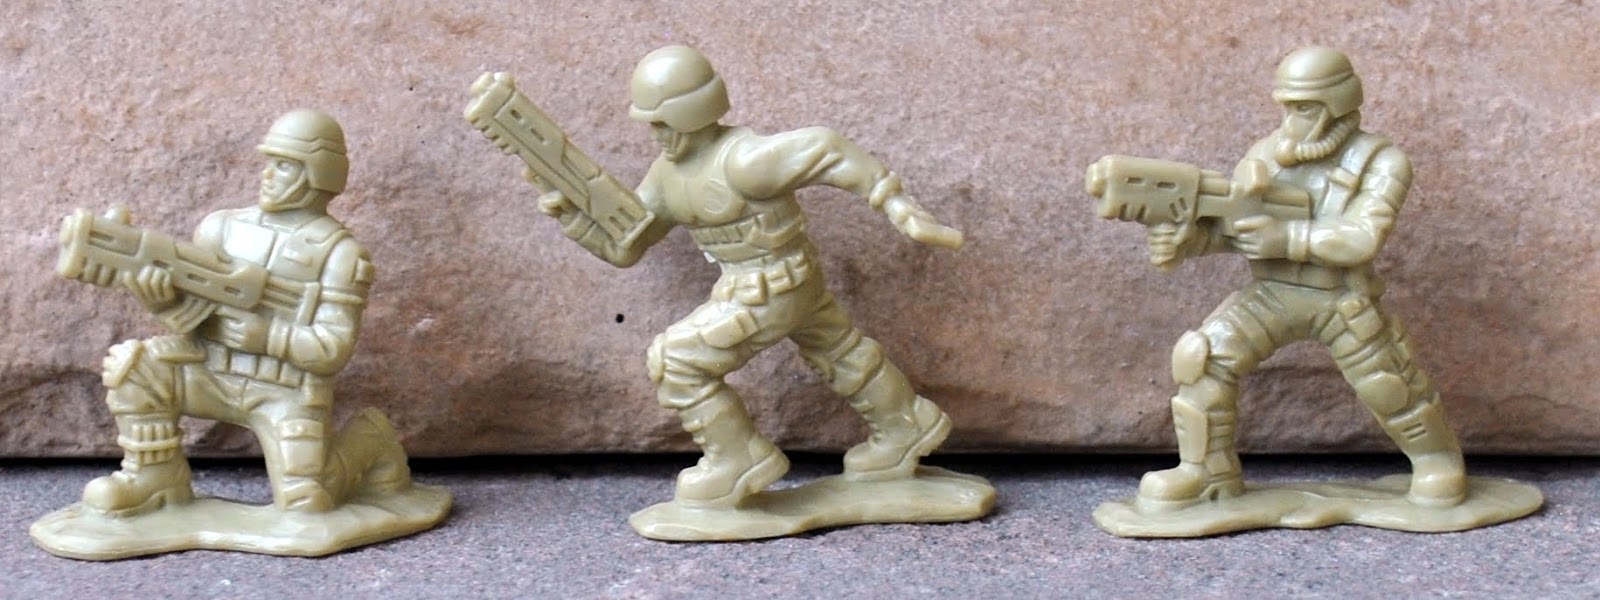 Fantasy Toy Soldiers: GALOOB: Xpanders, Knockoffs And